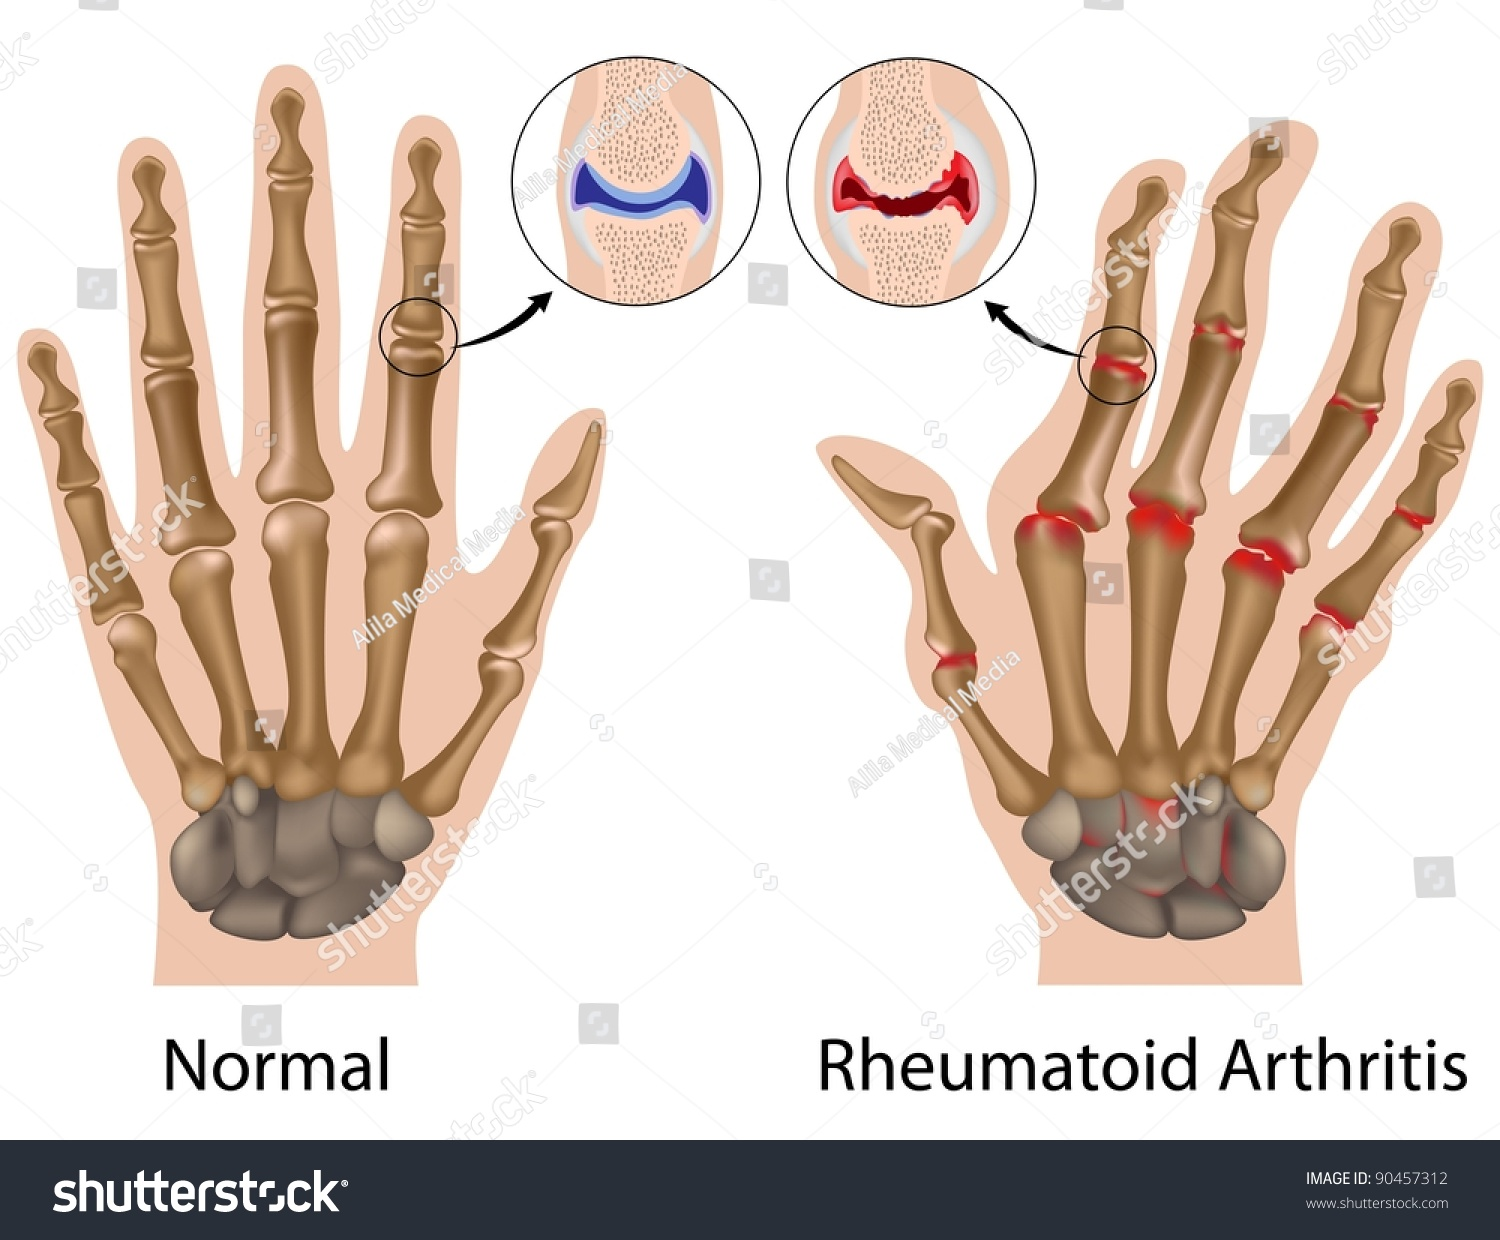 Rheumatoid Arthritis Finger Joints Details Hand Stock Illustration ...